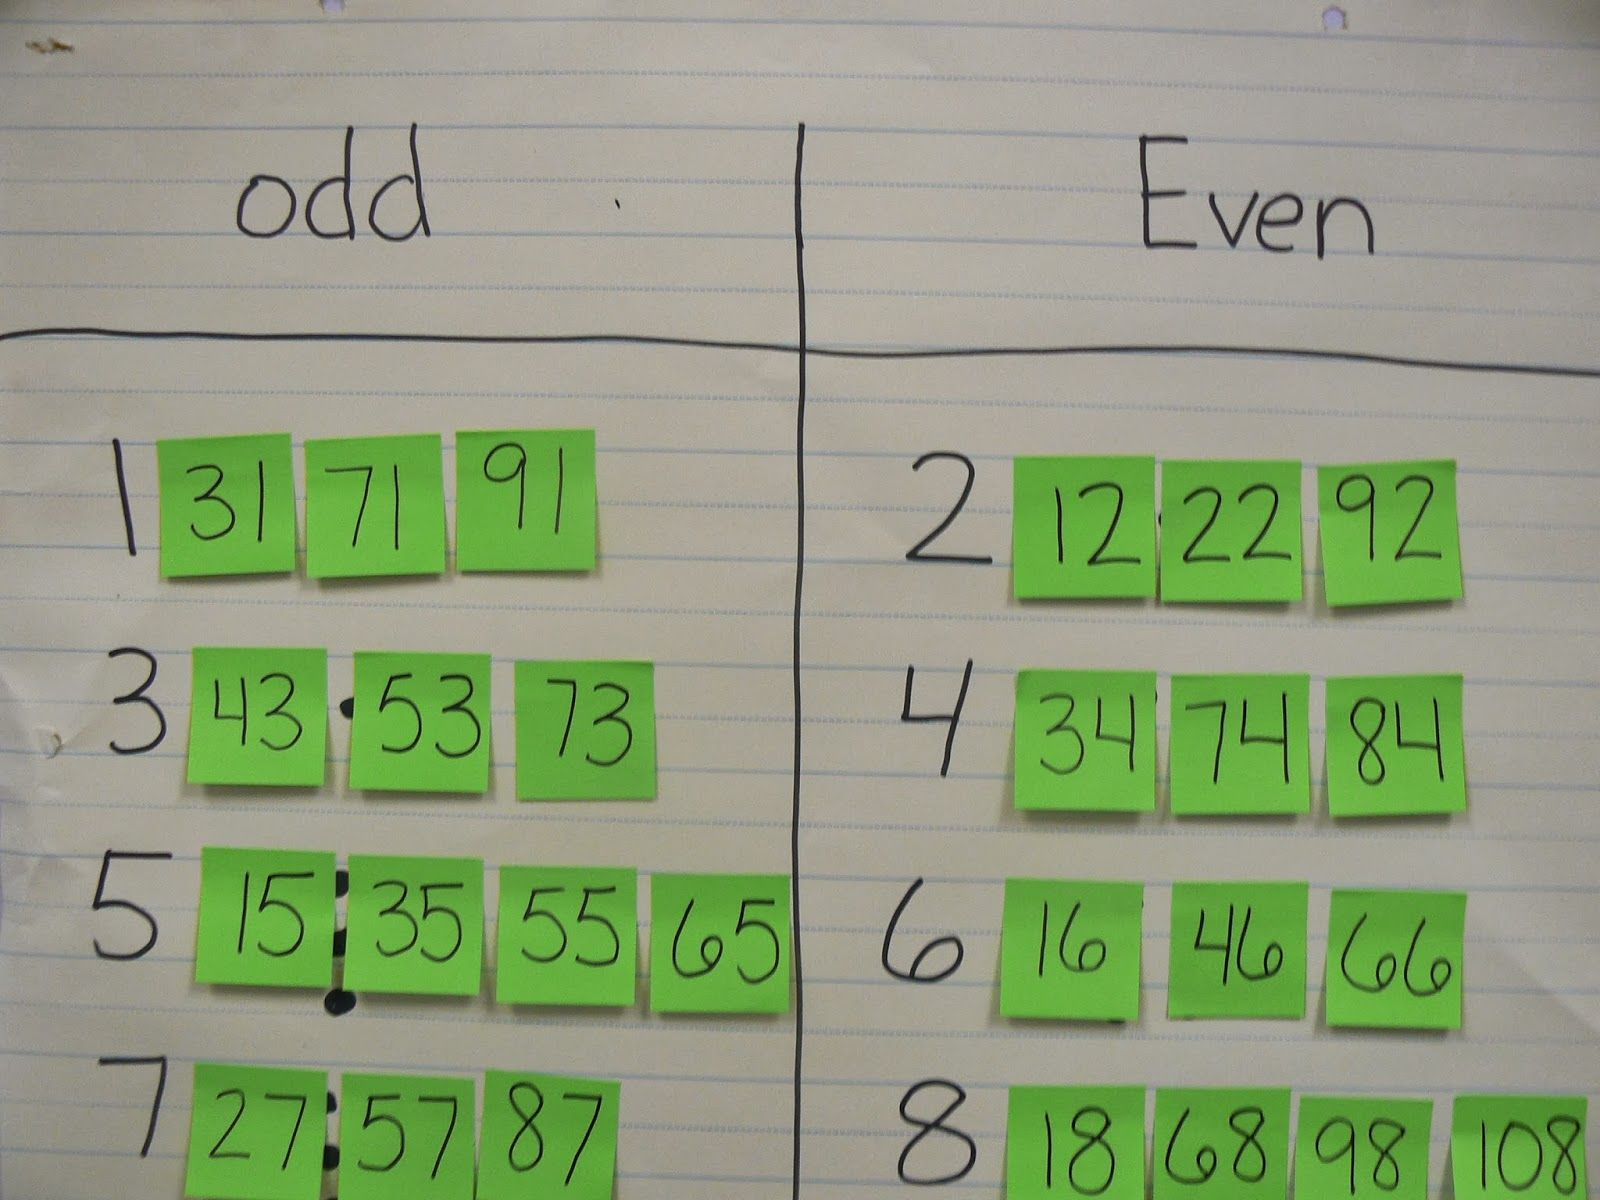 Odd And Even Post It Notes To See Connection To Bigger Numbers That Follow The Pattern Give Me